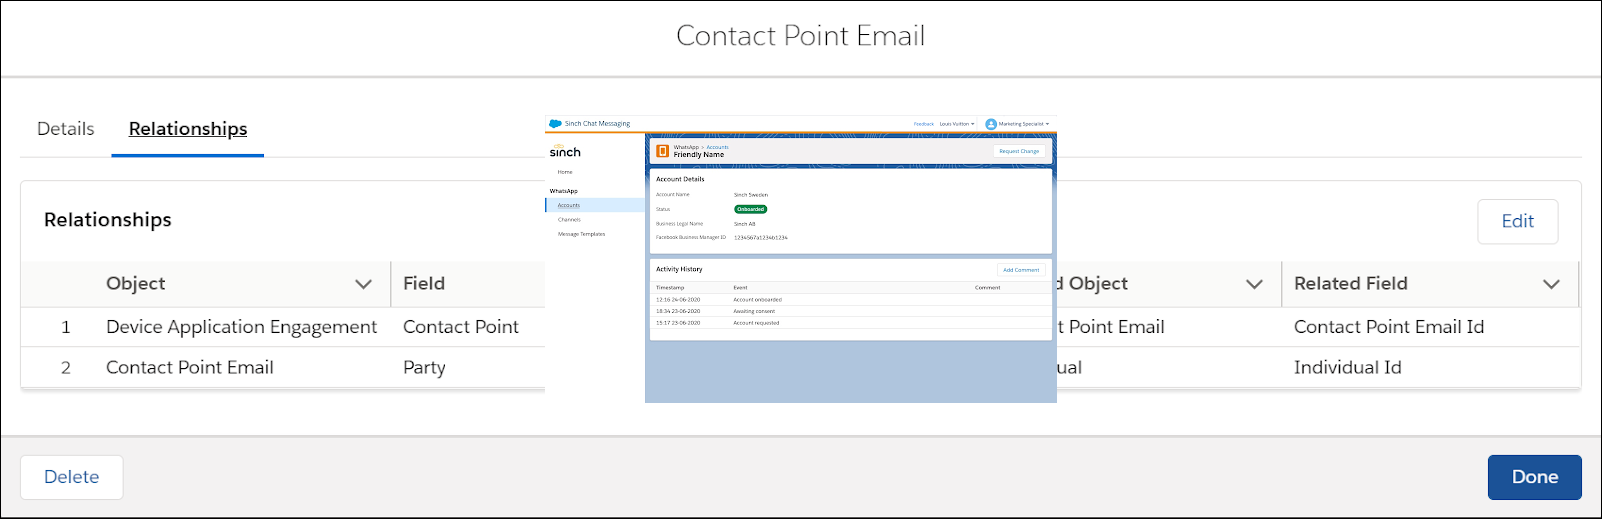 Relationships for Contact Point Email